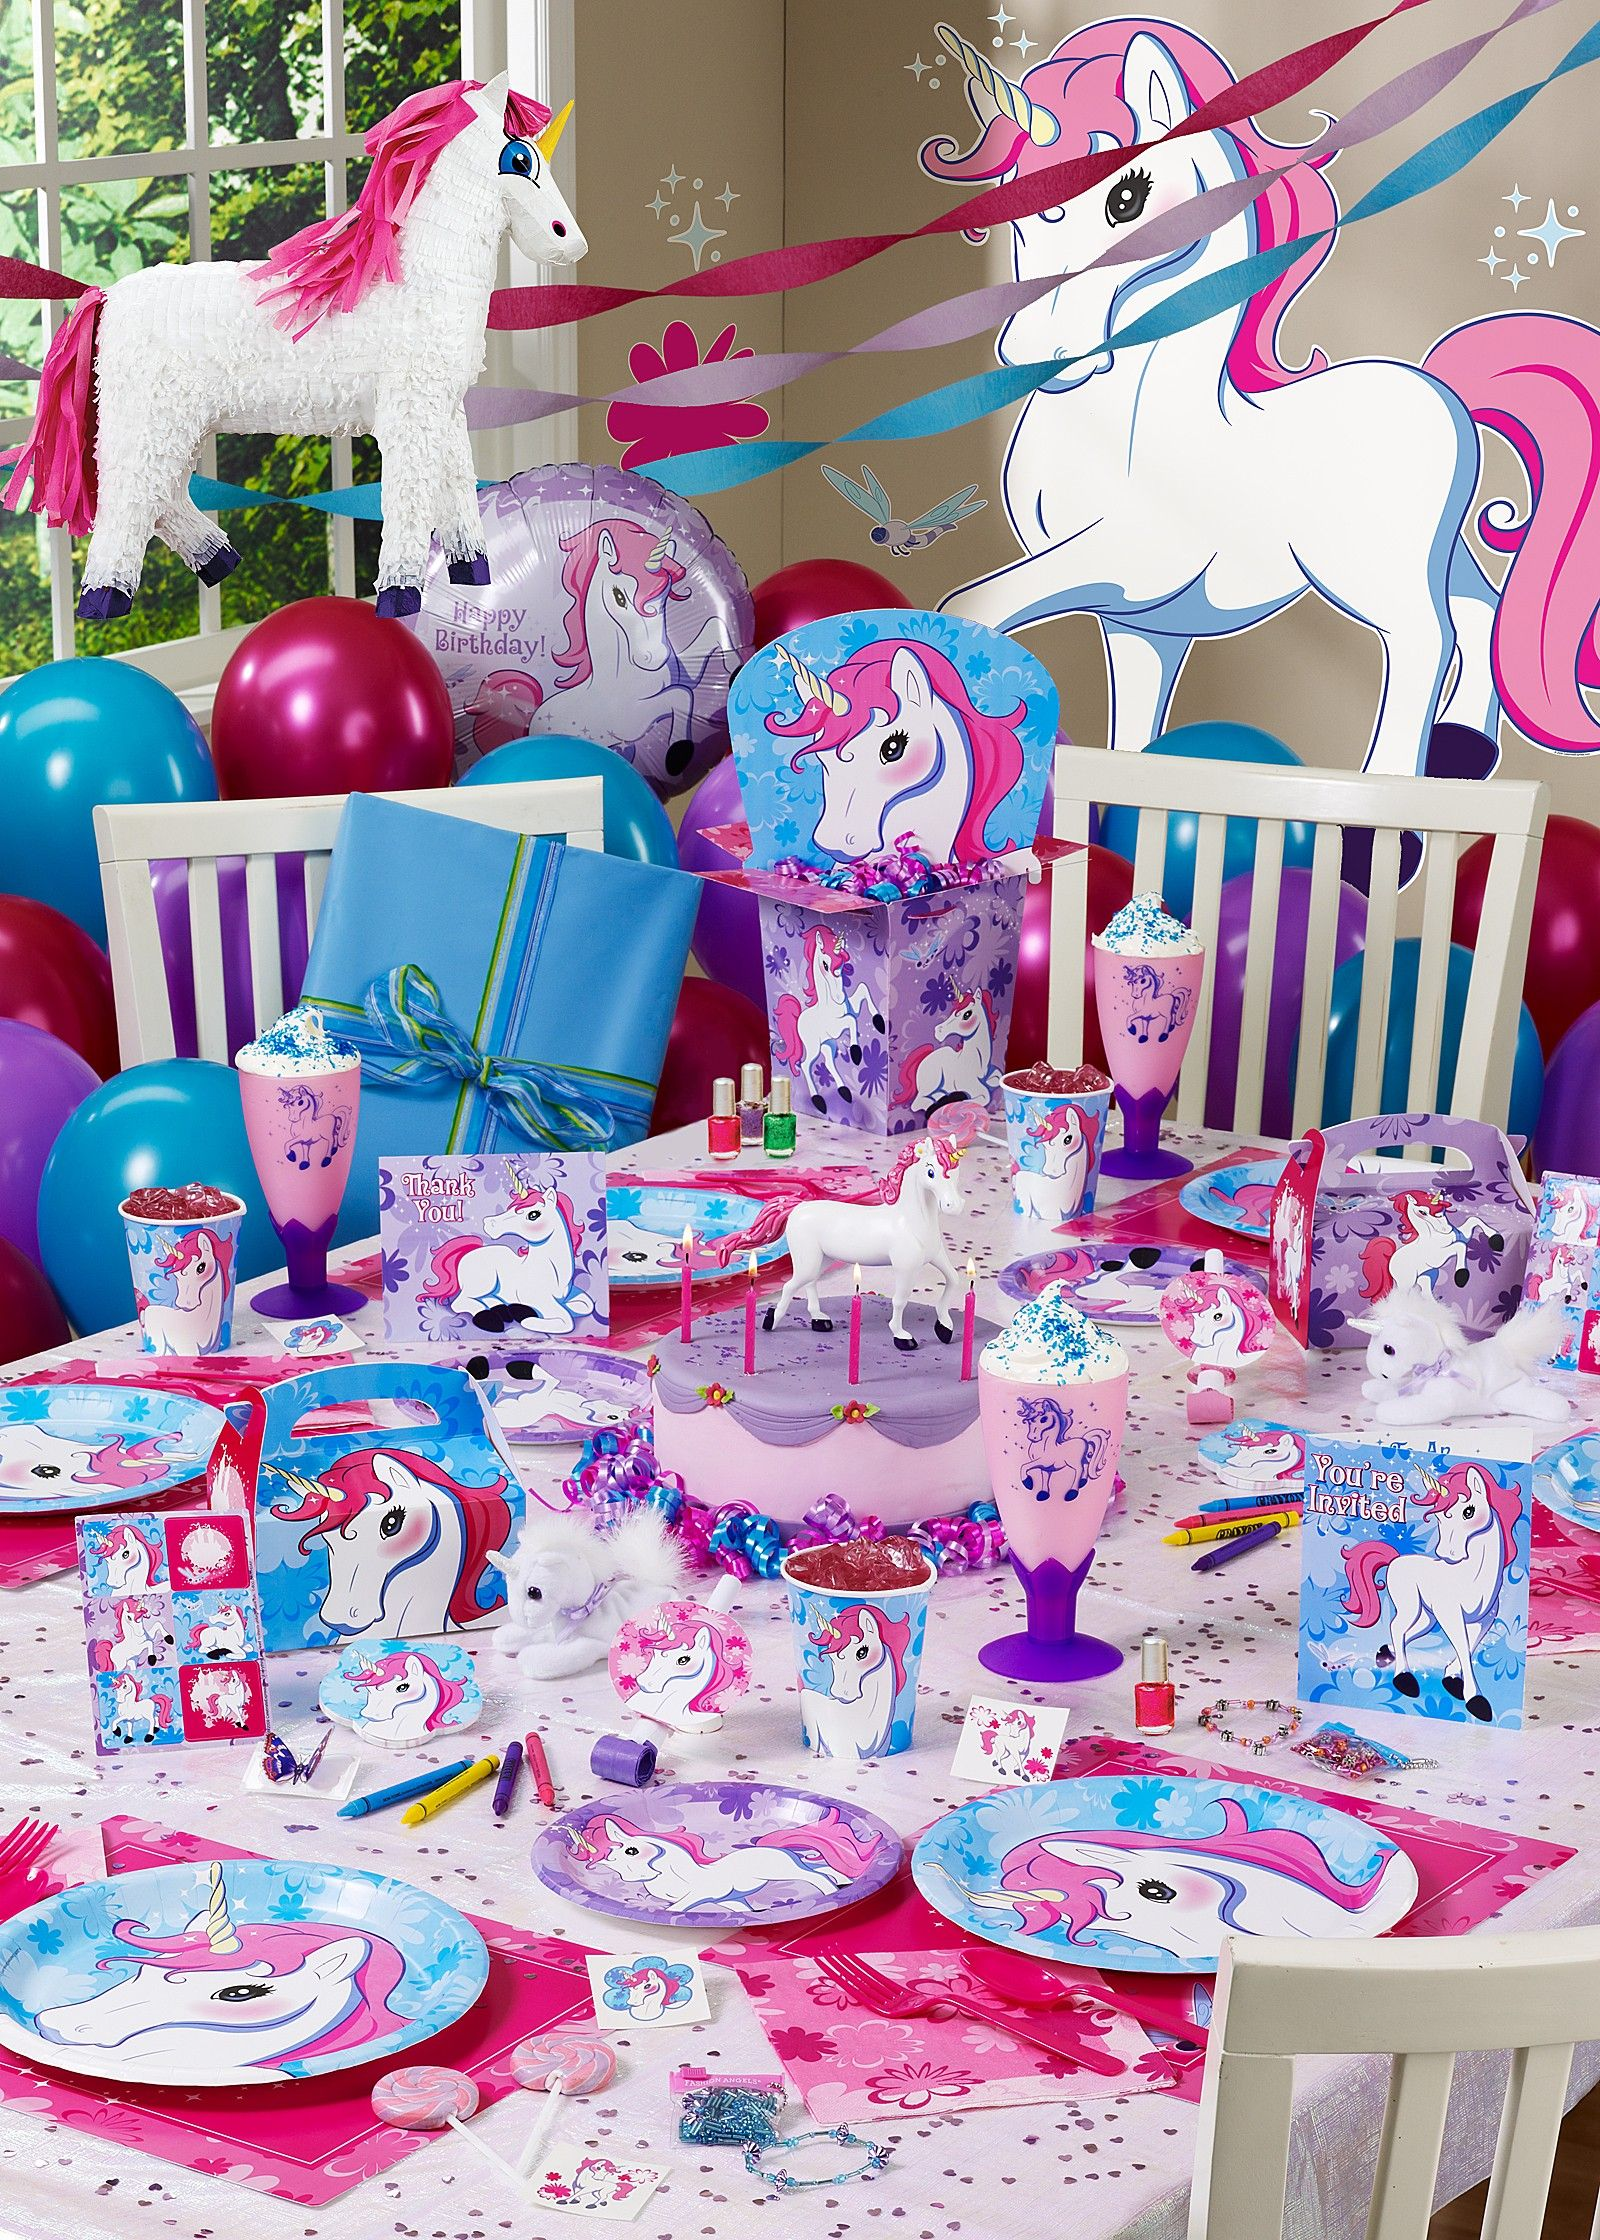 Veeeeean karenondskan hojaldraoficial la primera fiesta for Decoration ideas 7th birthday party